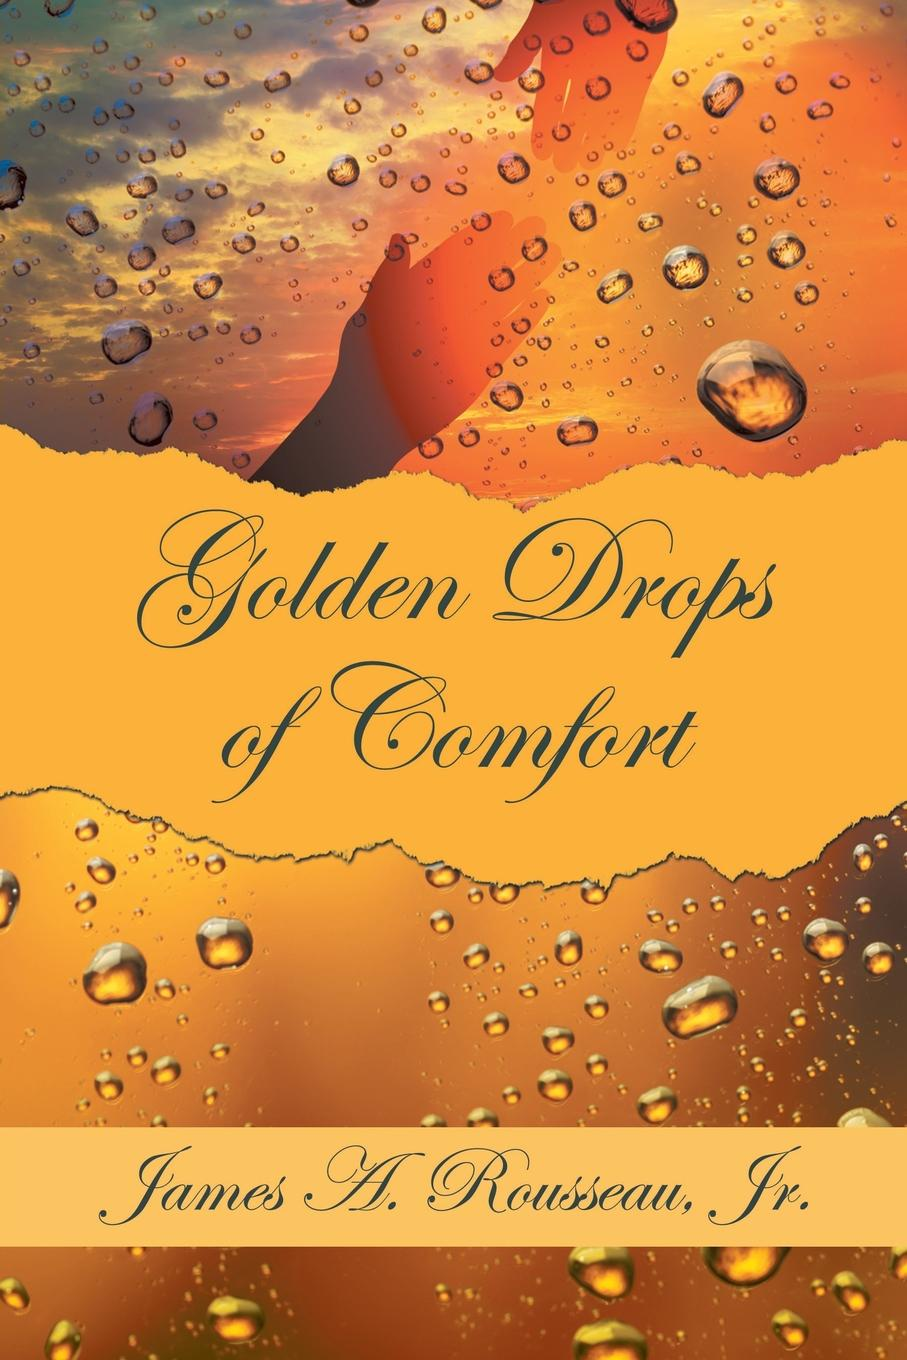 James A. Rousseau Jr. Golden Drops of Comfort who will comfort toffle